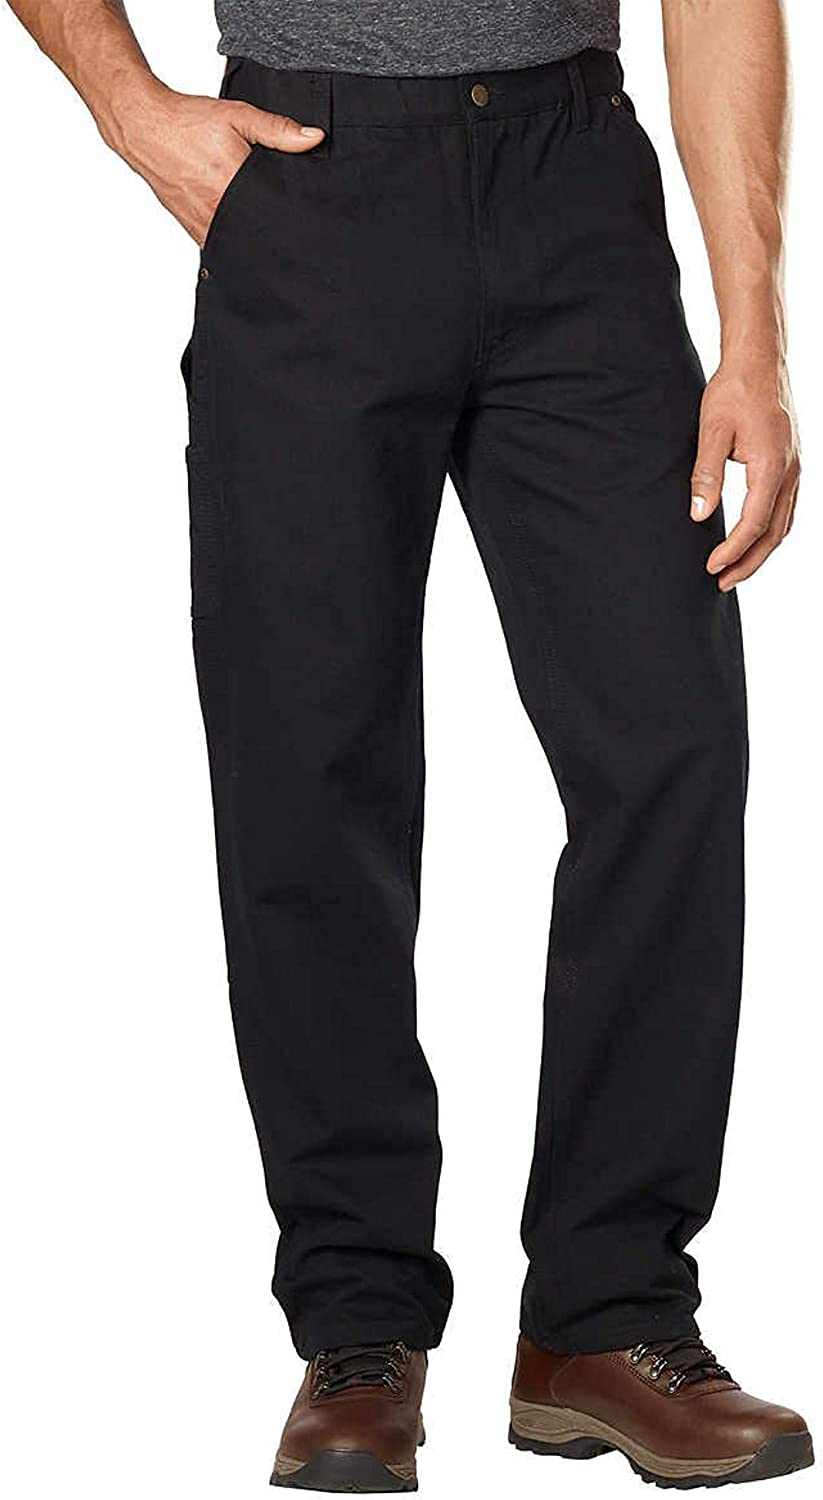 Stanley Men's Canvas Popular product Safety and trust Utility Work Pant